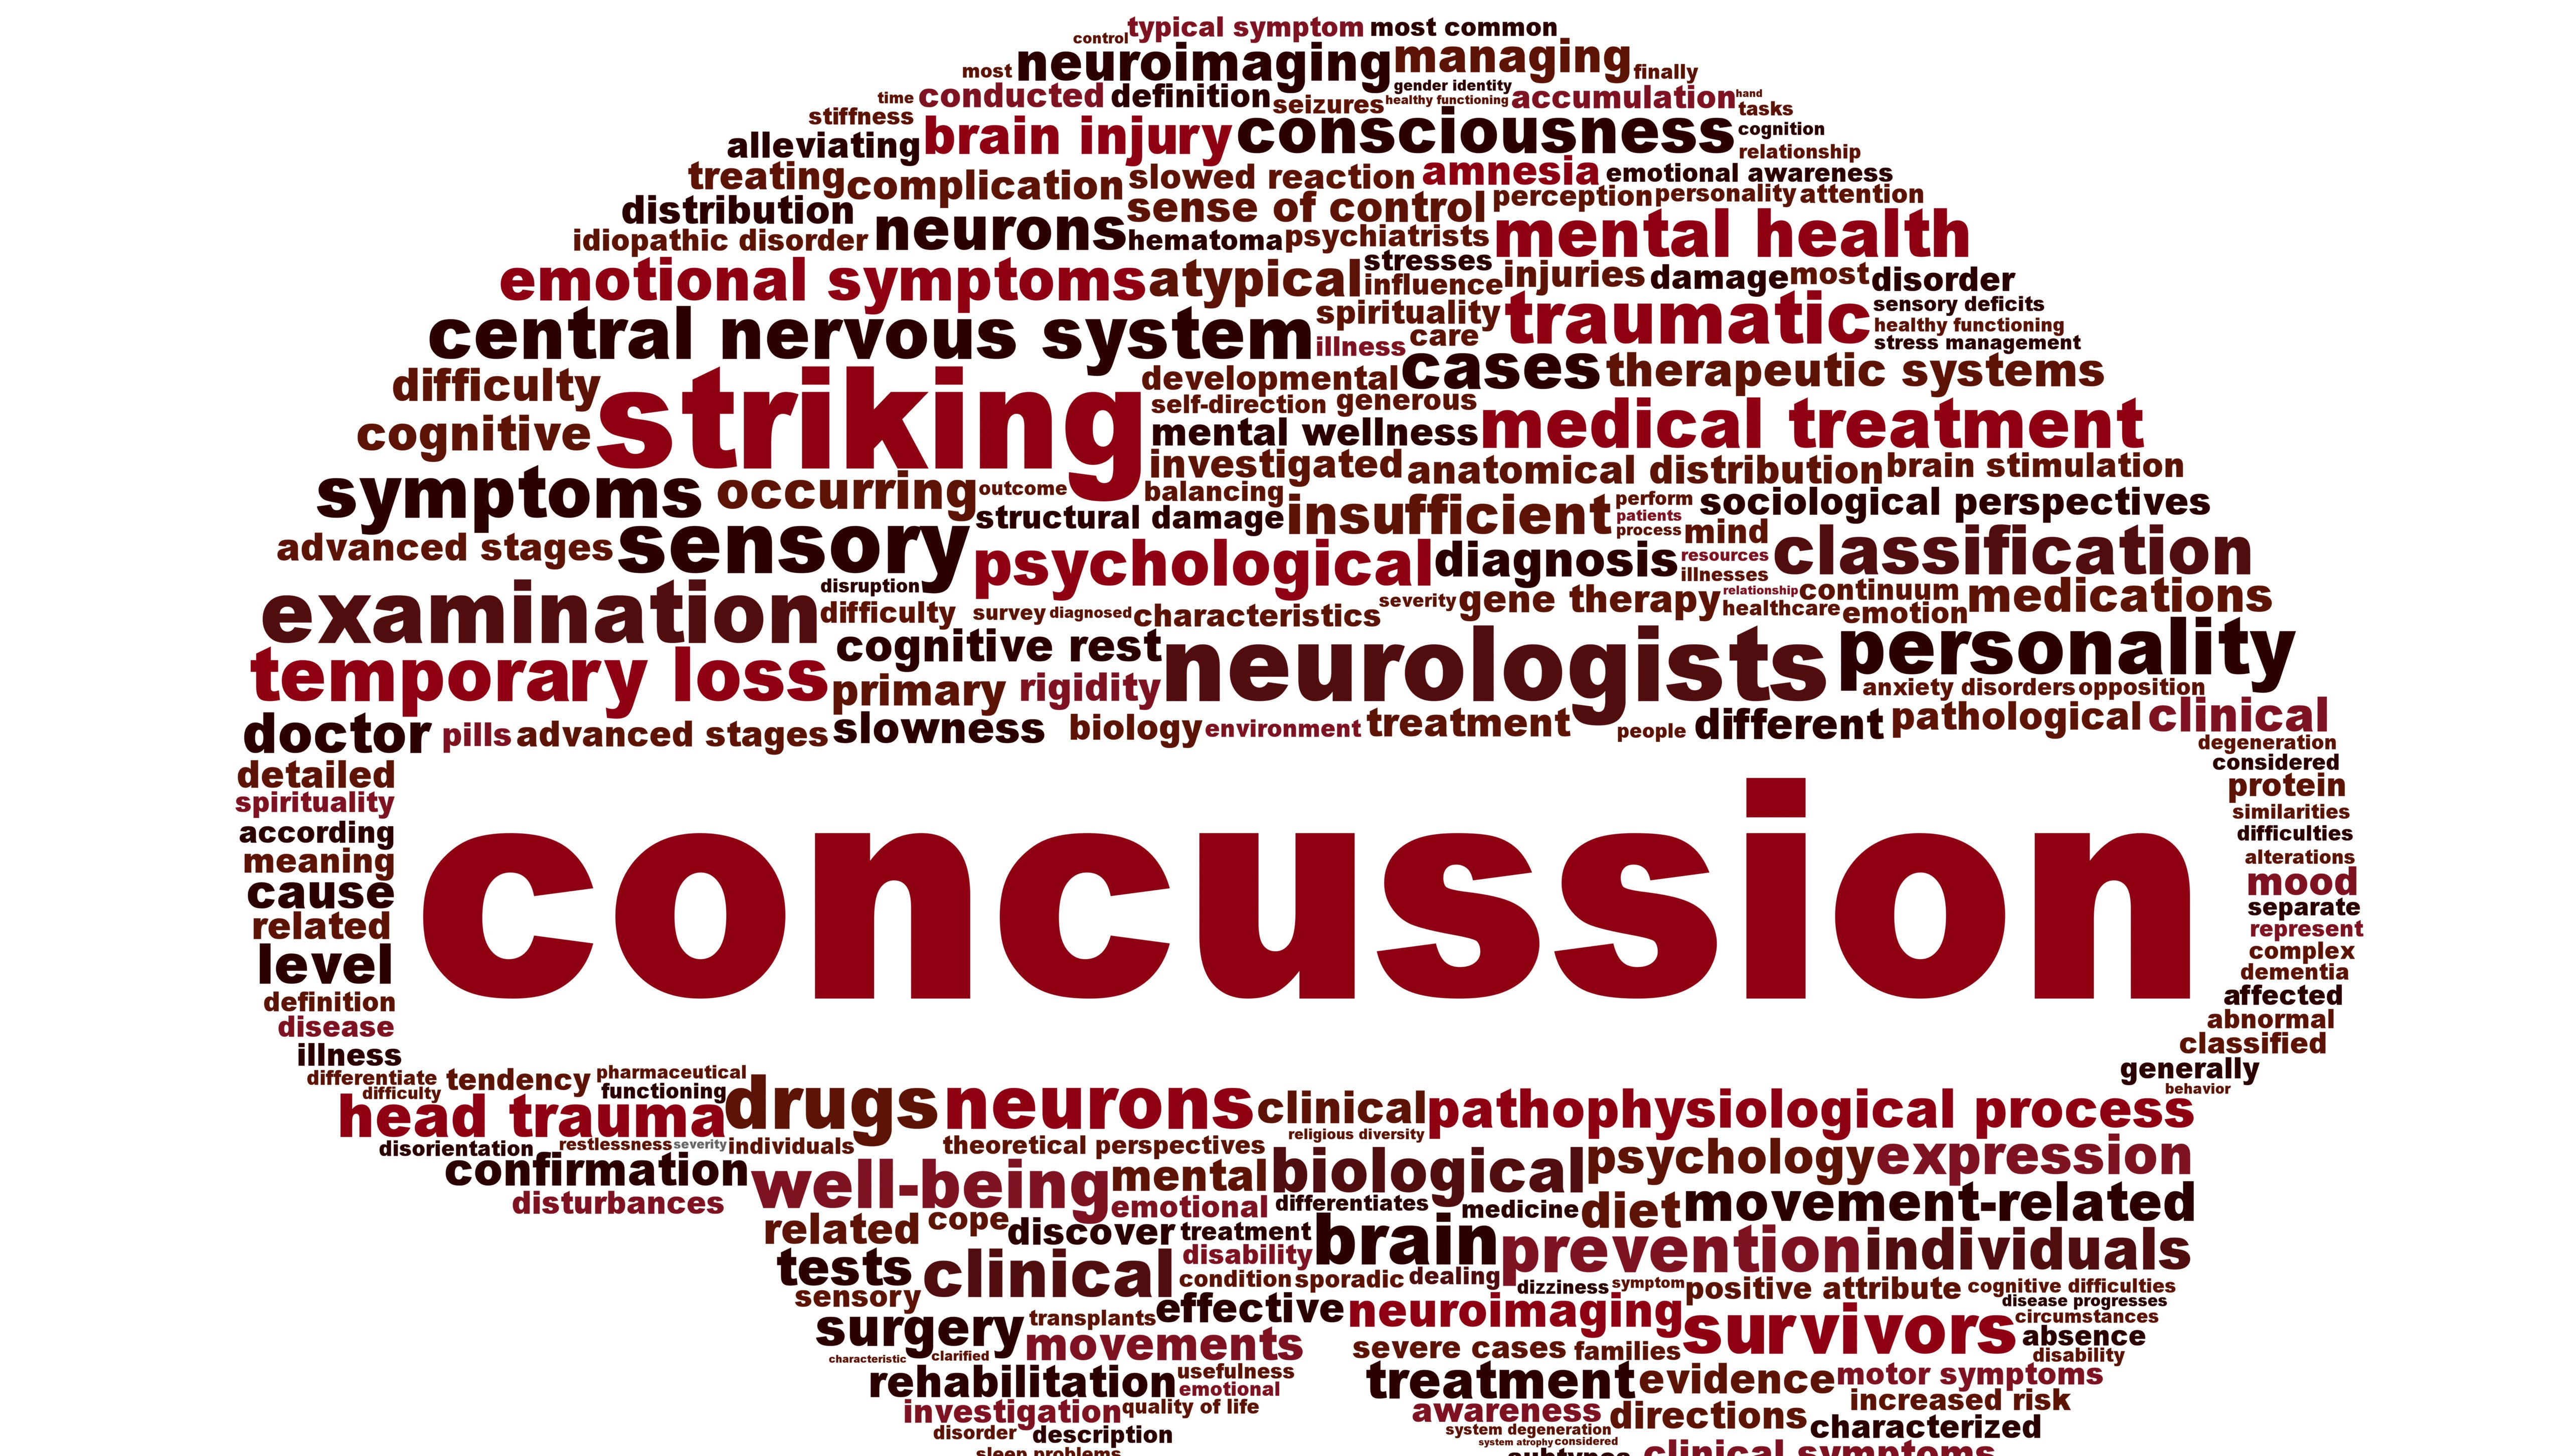 Concussion is the focus of UHS specialists